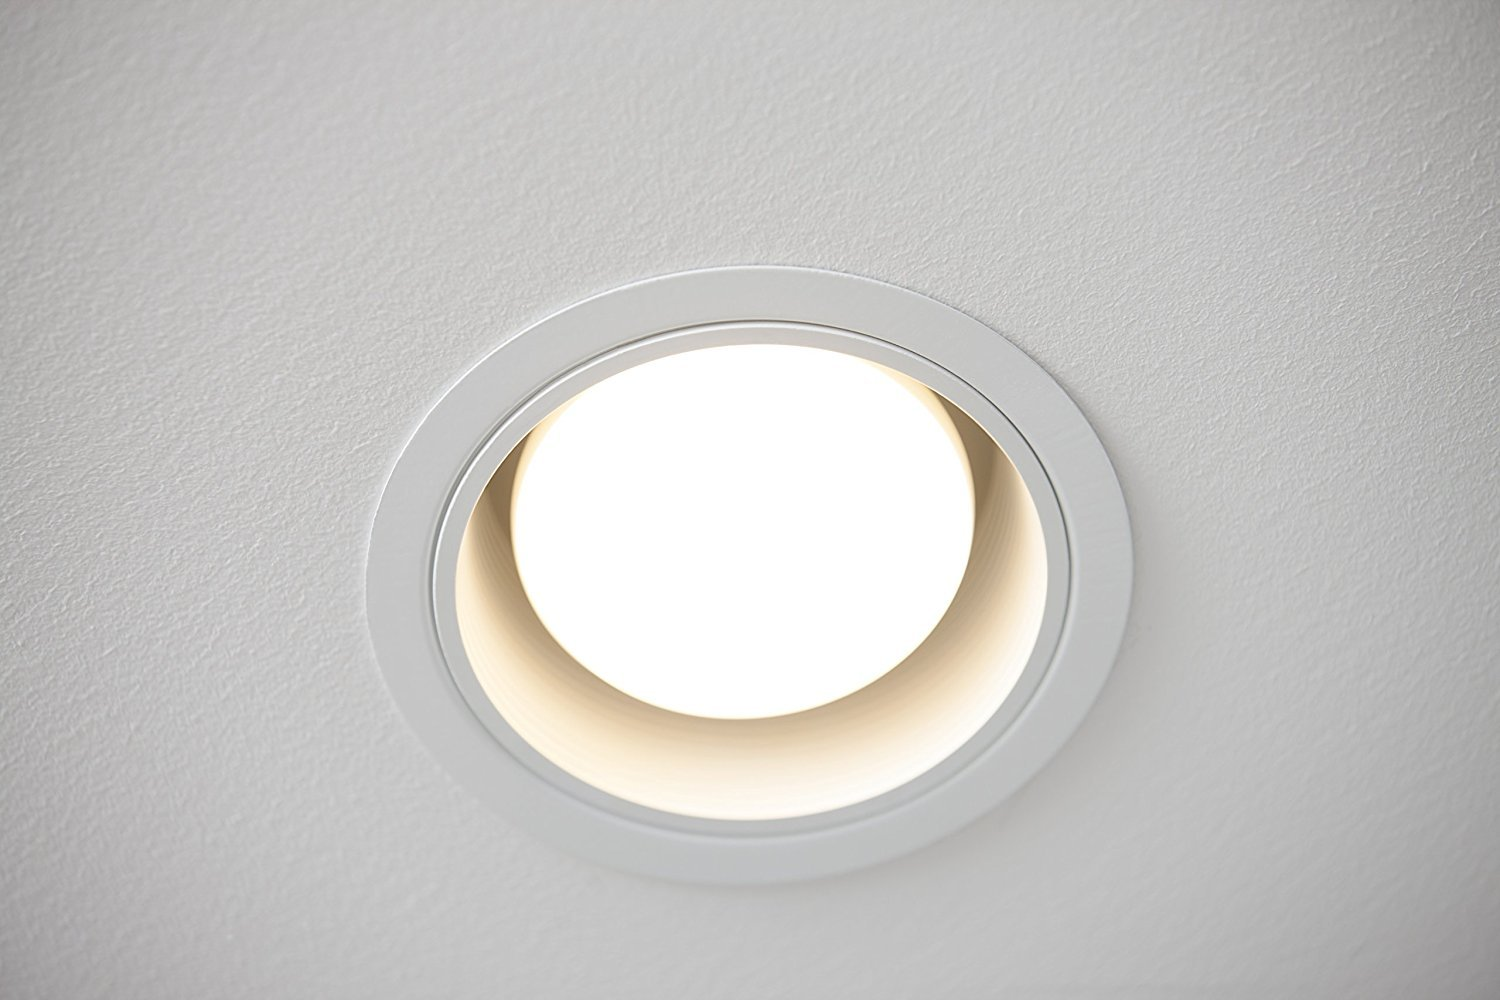 Philips Dimmable BR30 Light Bulb Image 3